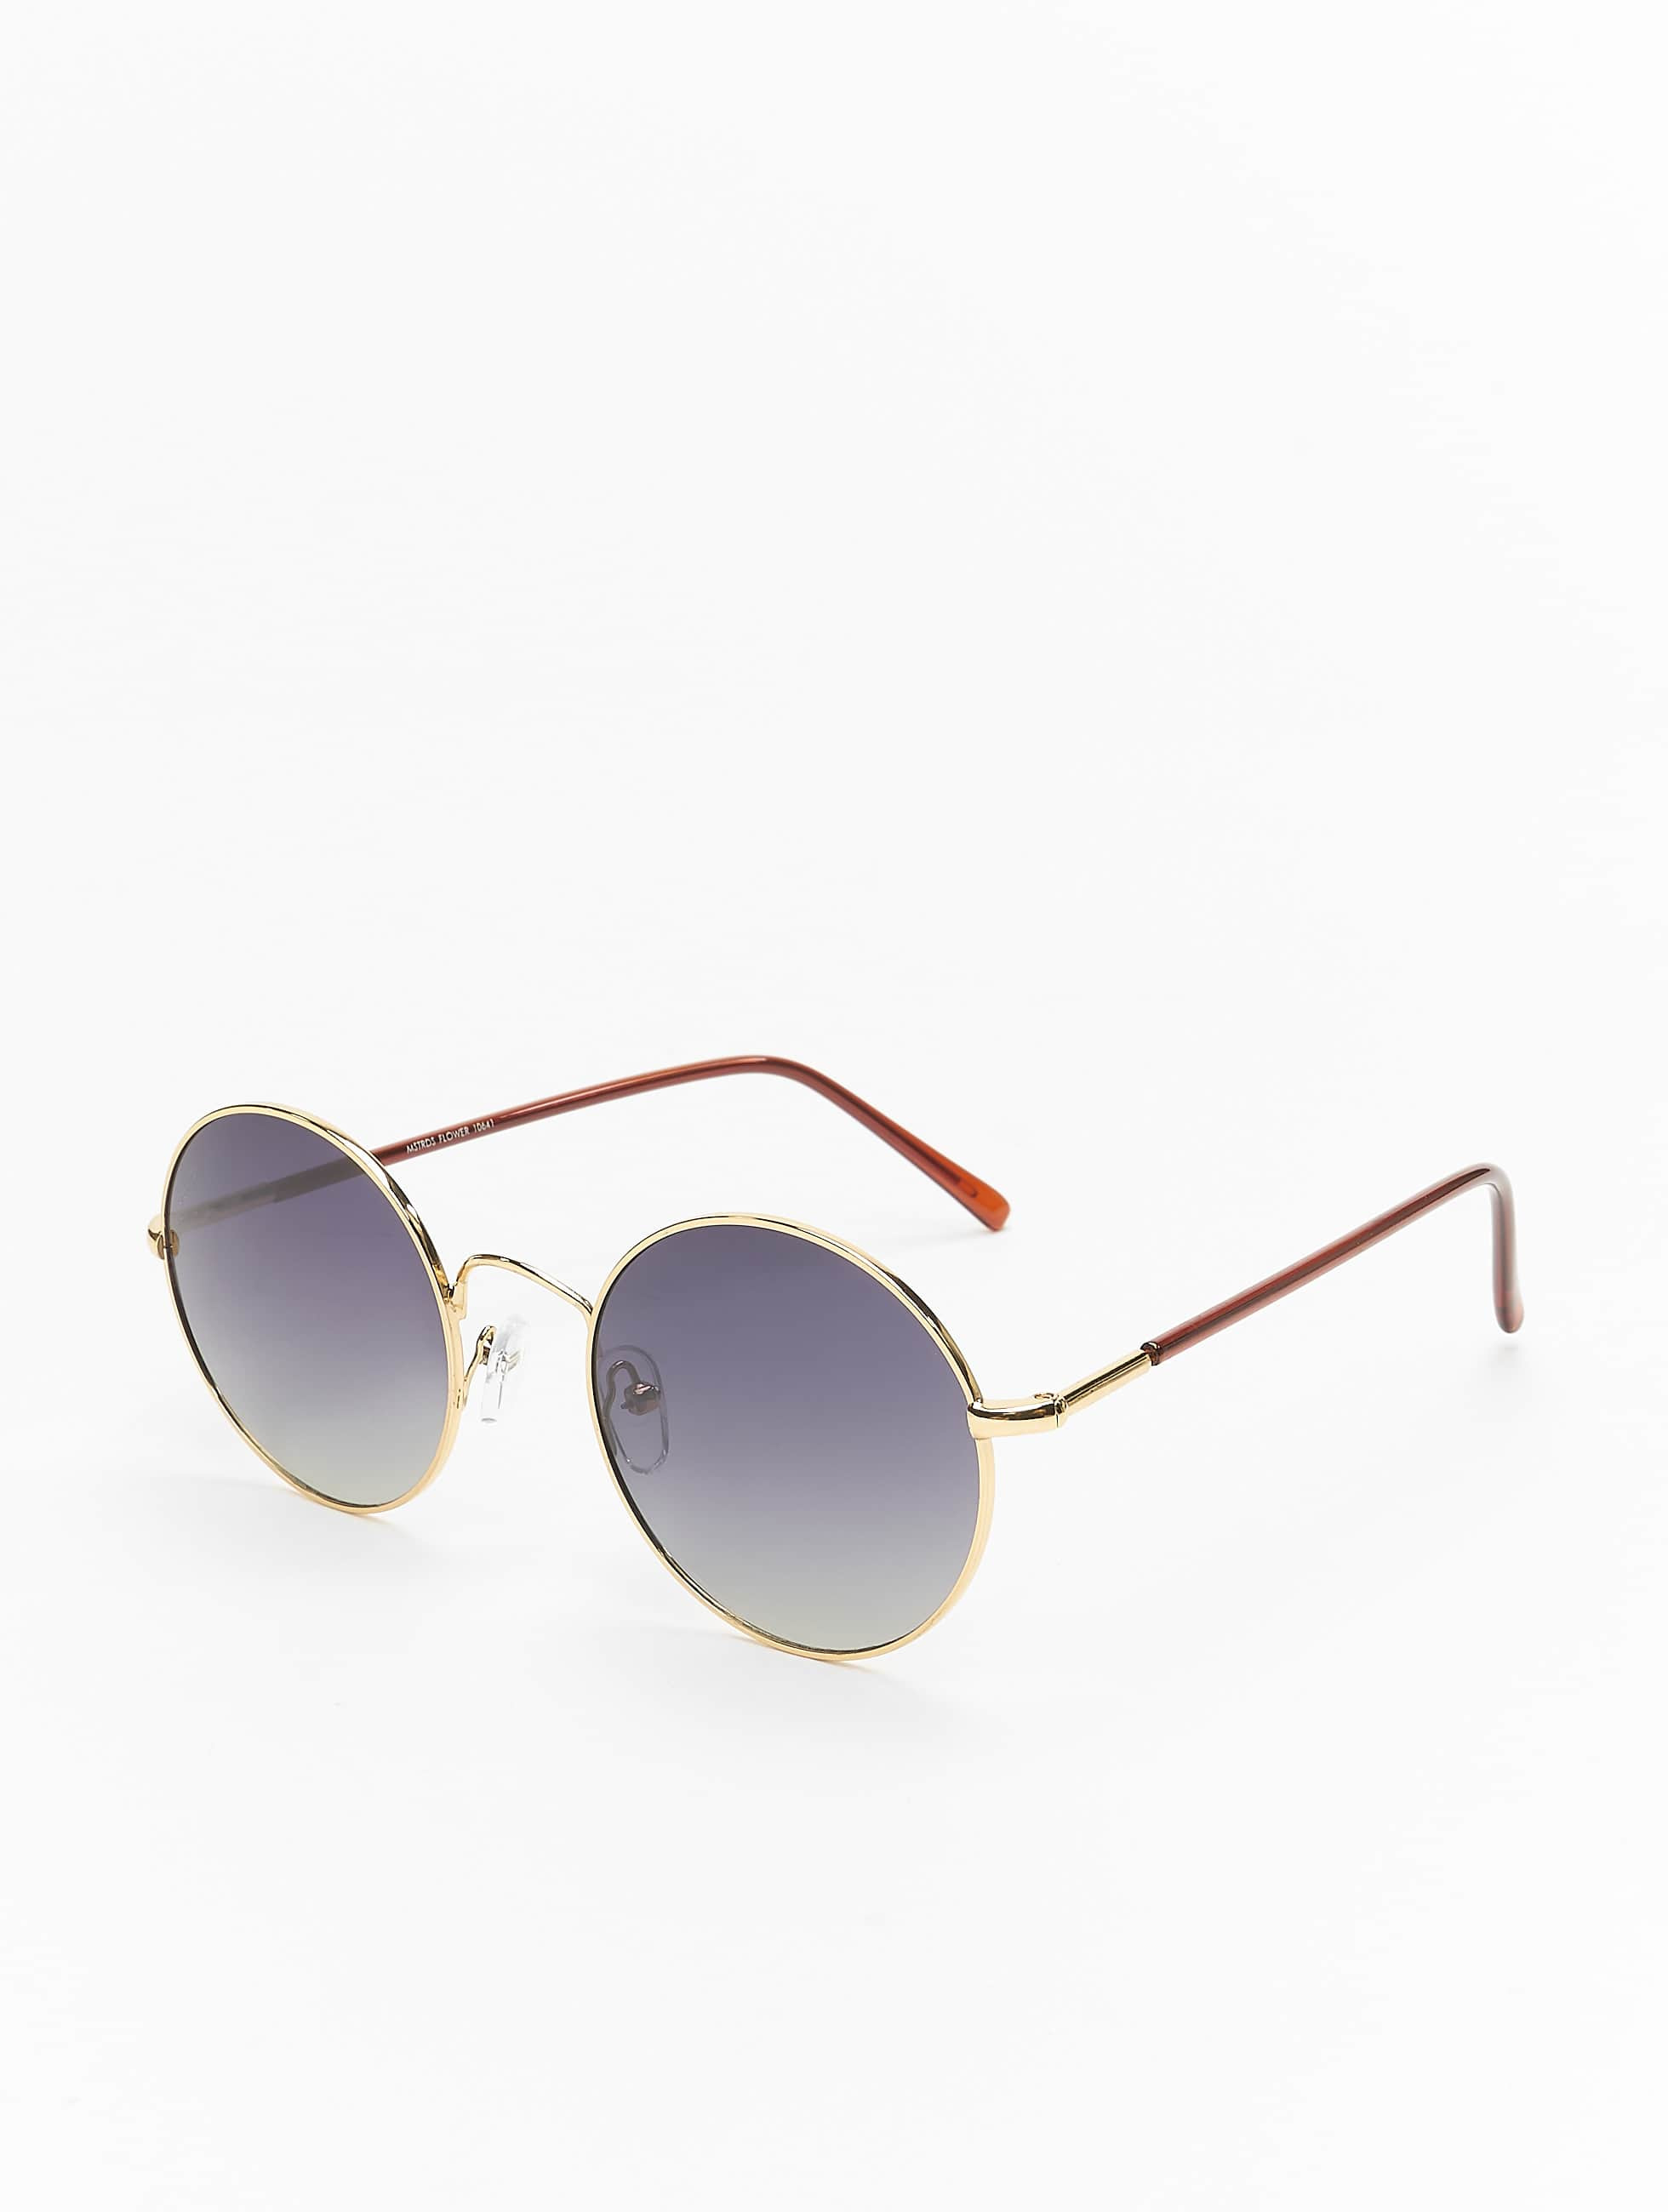 MSTRDS Sunglasses Flower Mirror gold colored